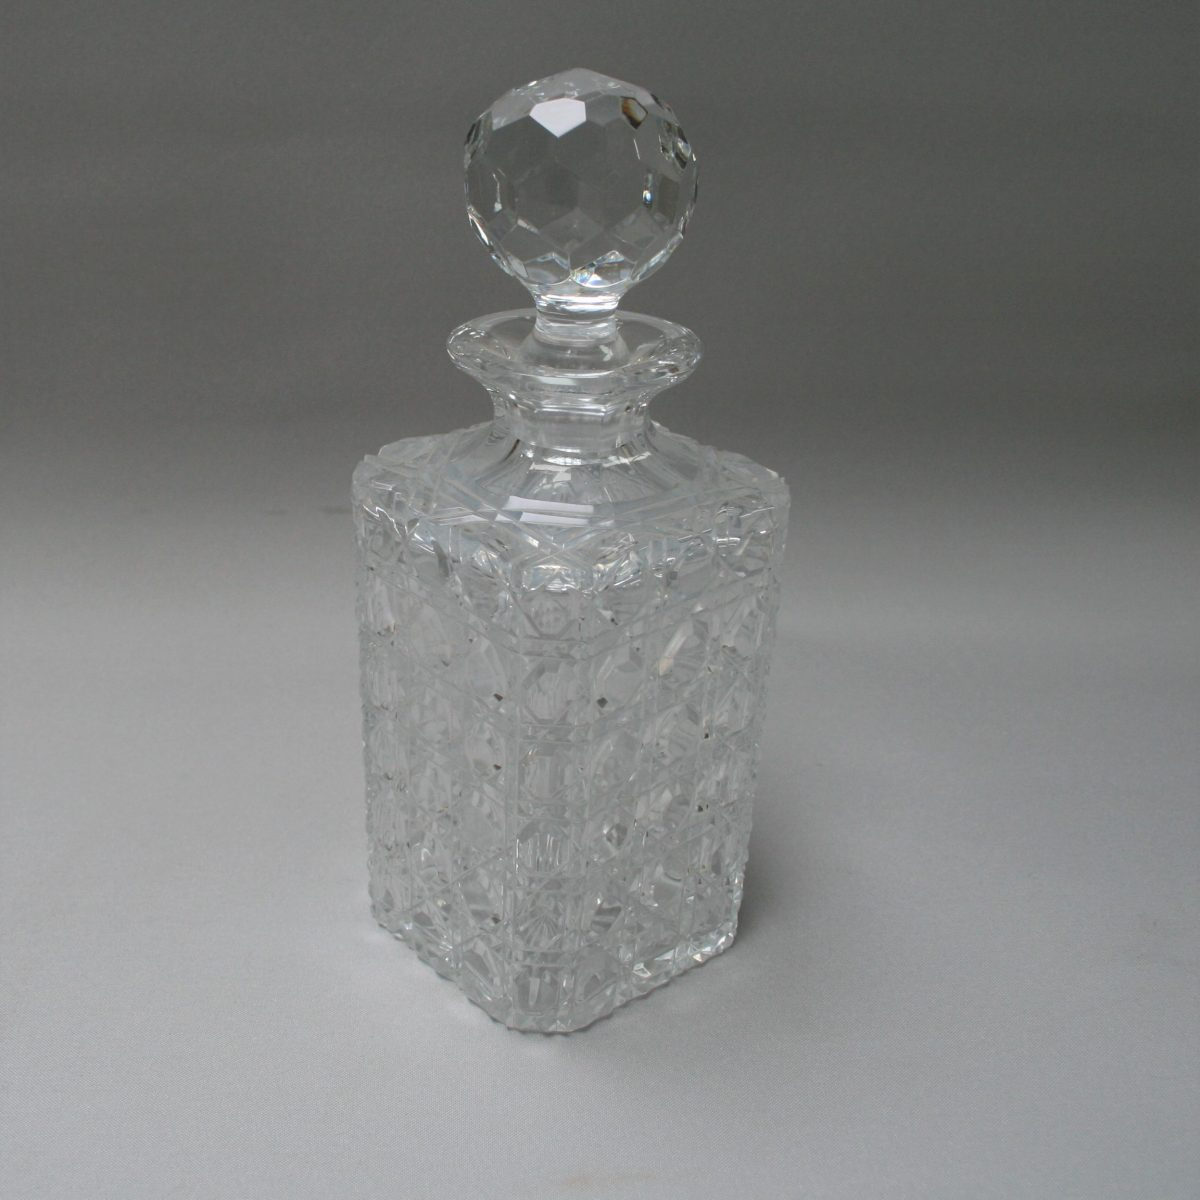 Edwardian Hobnail cut glass decanter